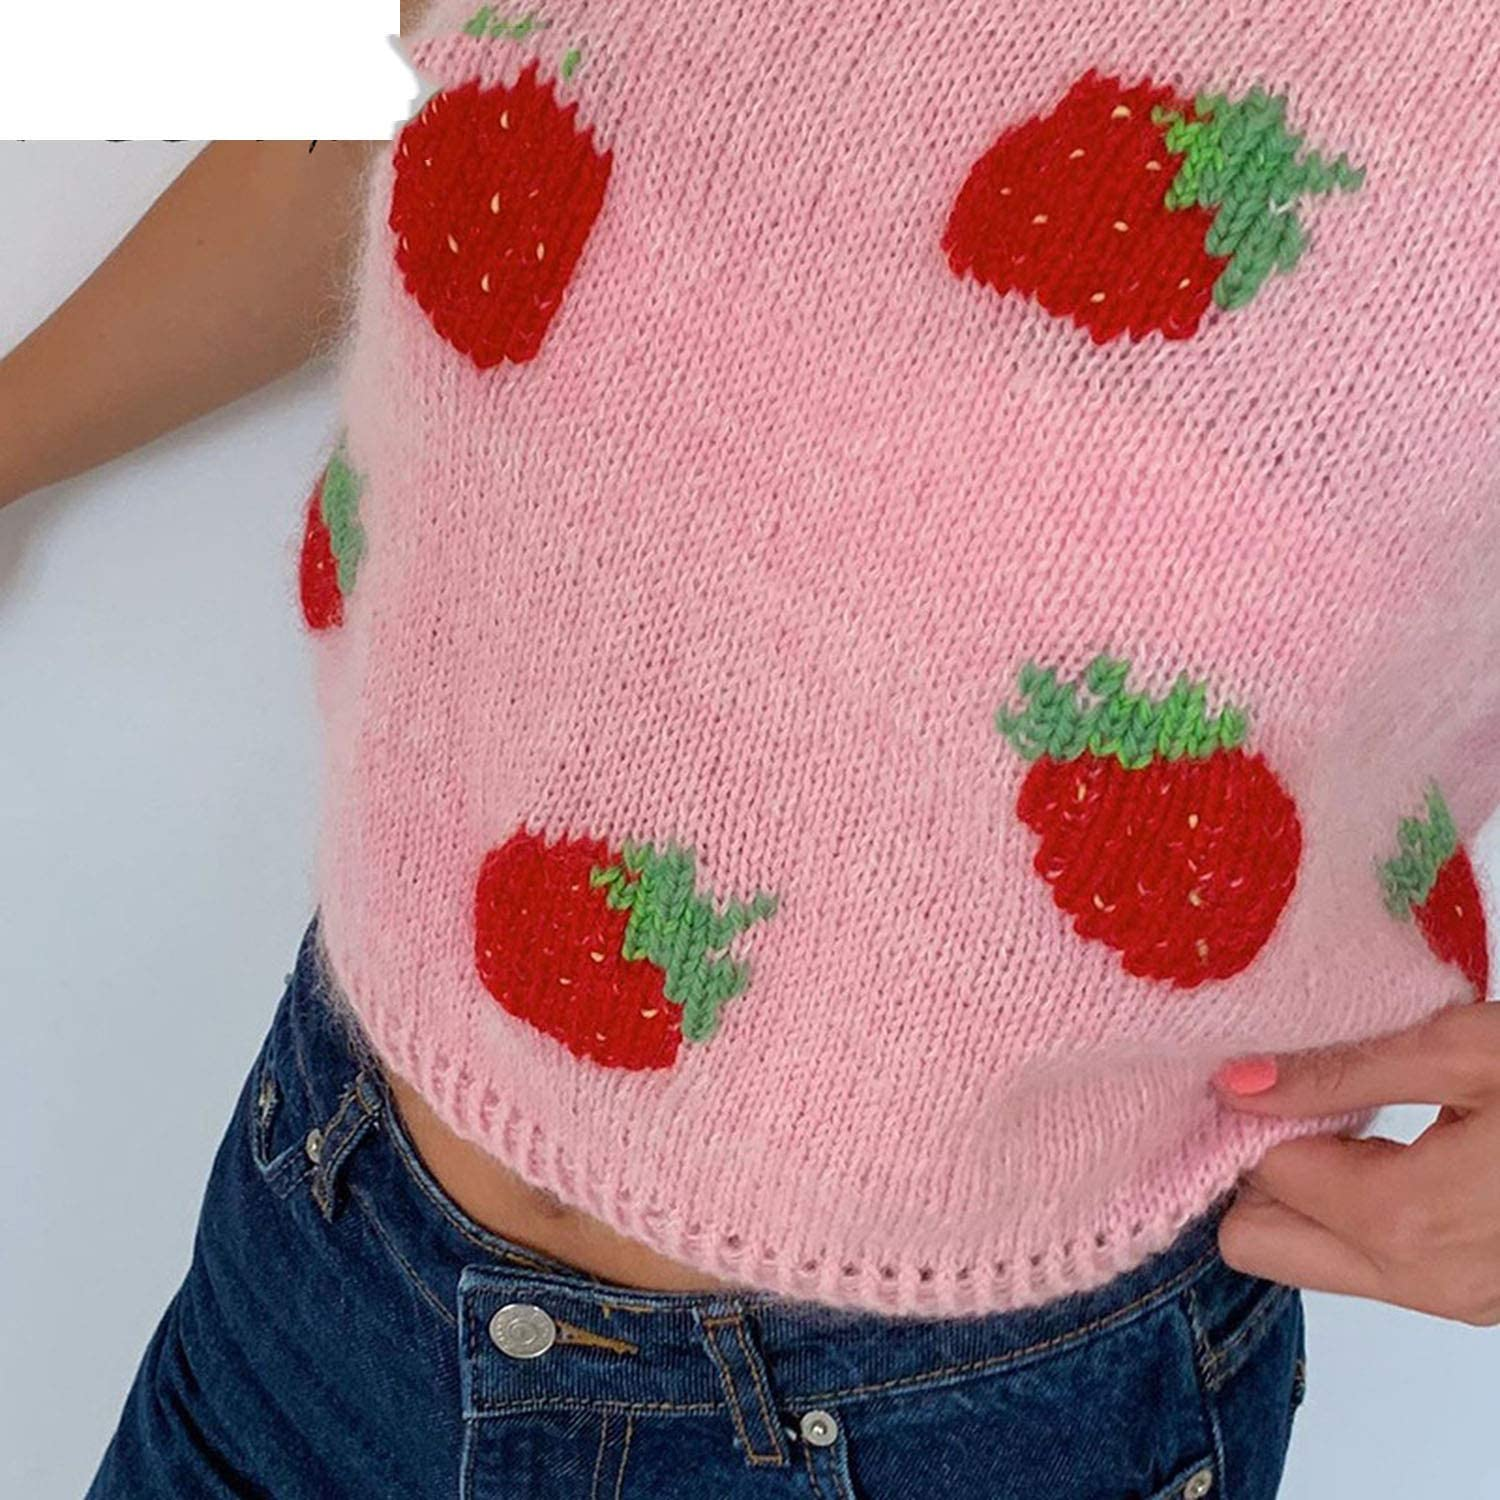 E-Girl Sweet Strawberry Printing Sleeveless Knitted Vests Y2K Fashion Vintage O-Neck Pink